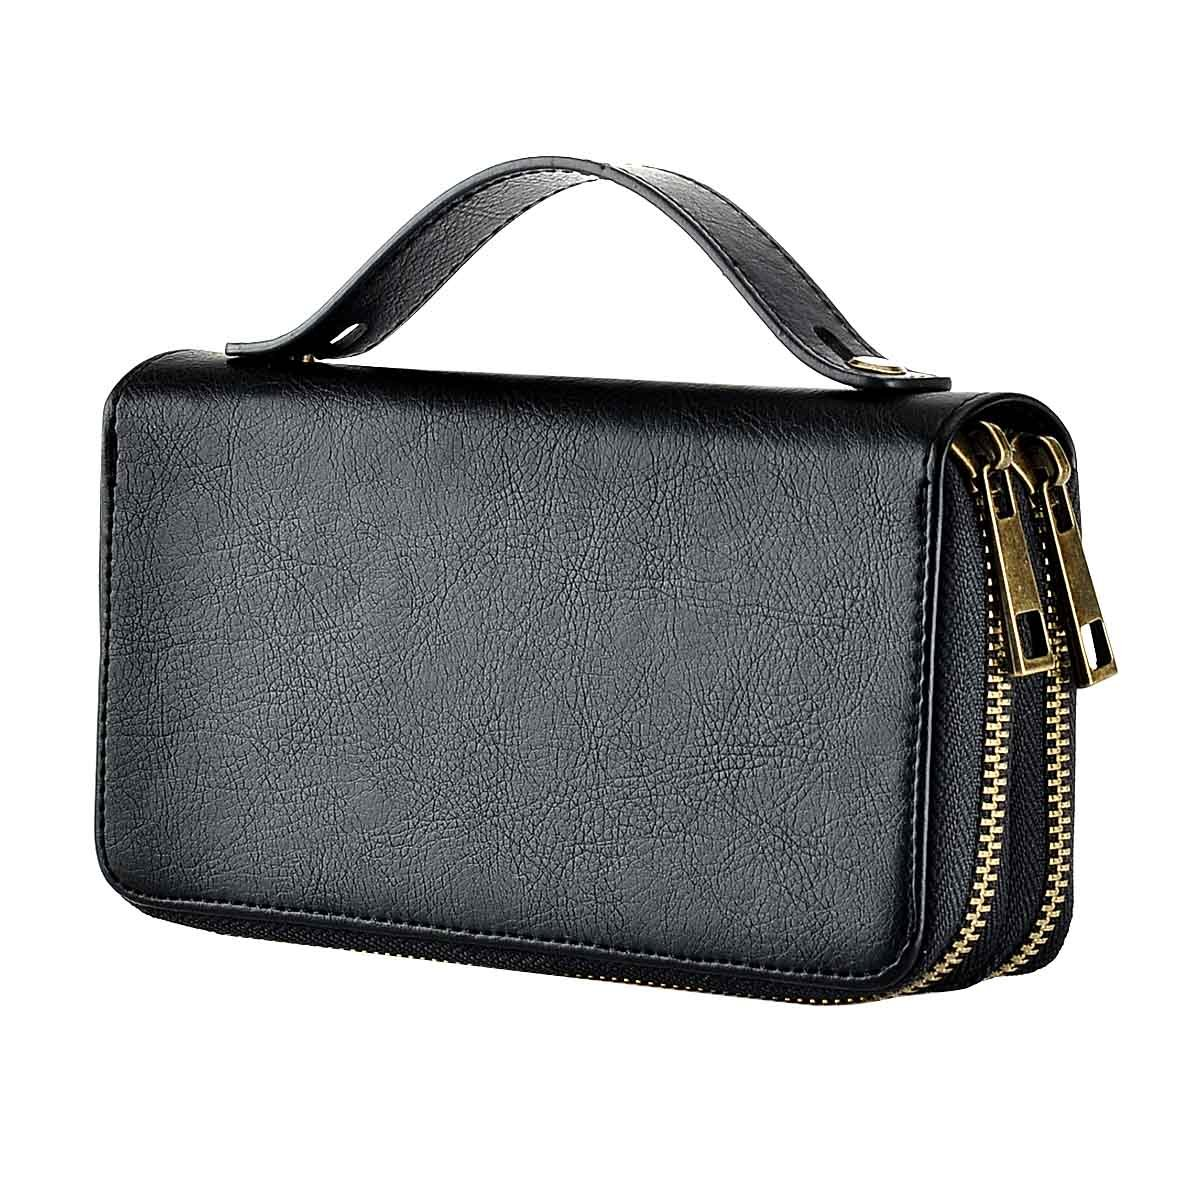 HAWEE Big Size Long Wallet with Leash for Woman Dual Zippered Clutch Purse Premium PU 5 Credit Card Slot 1 Smart Phone Slot 1 Coin Purse and Ample Compartments for Cash and Note, Black with Strap